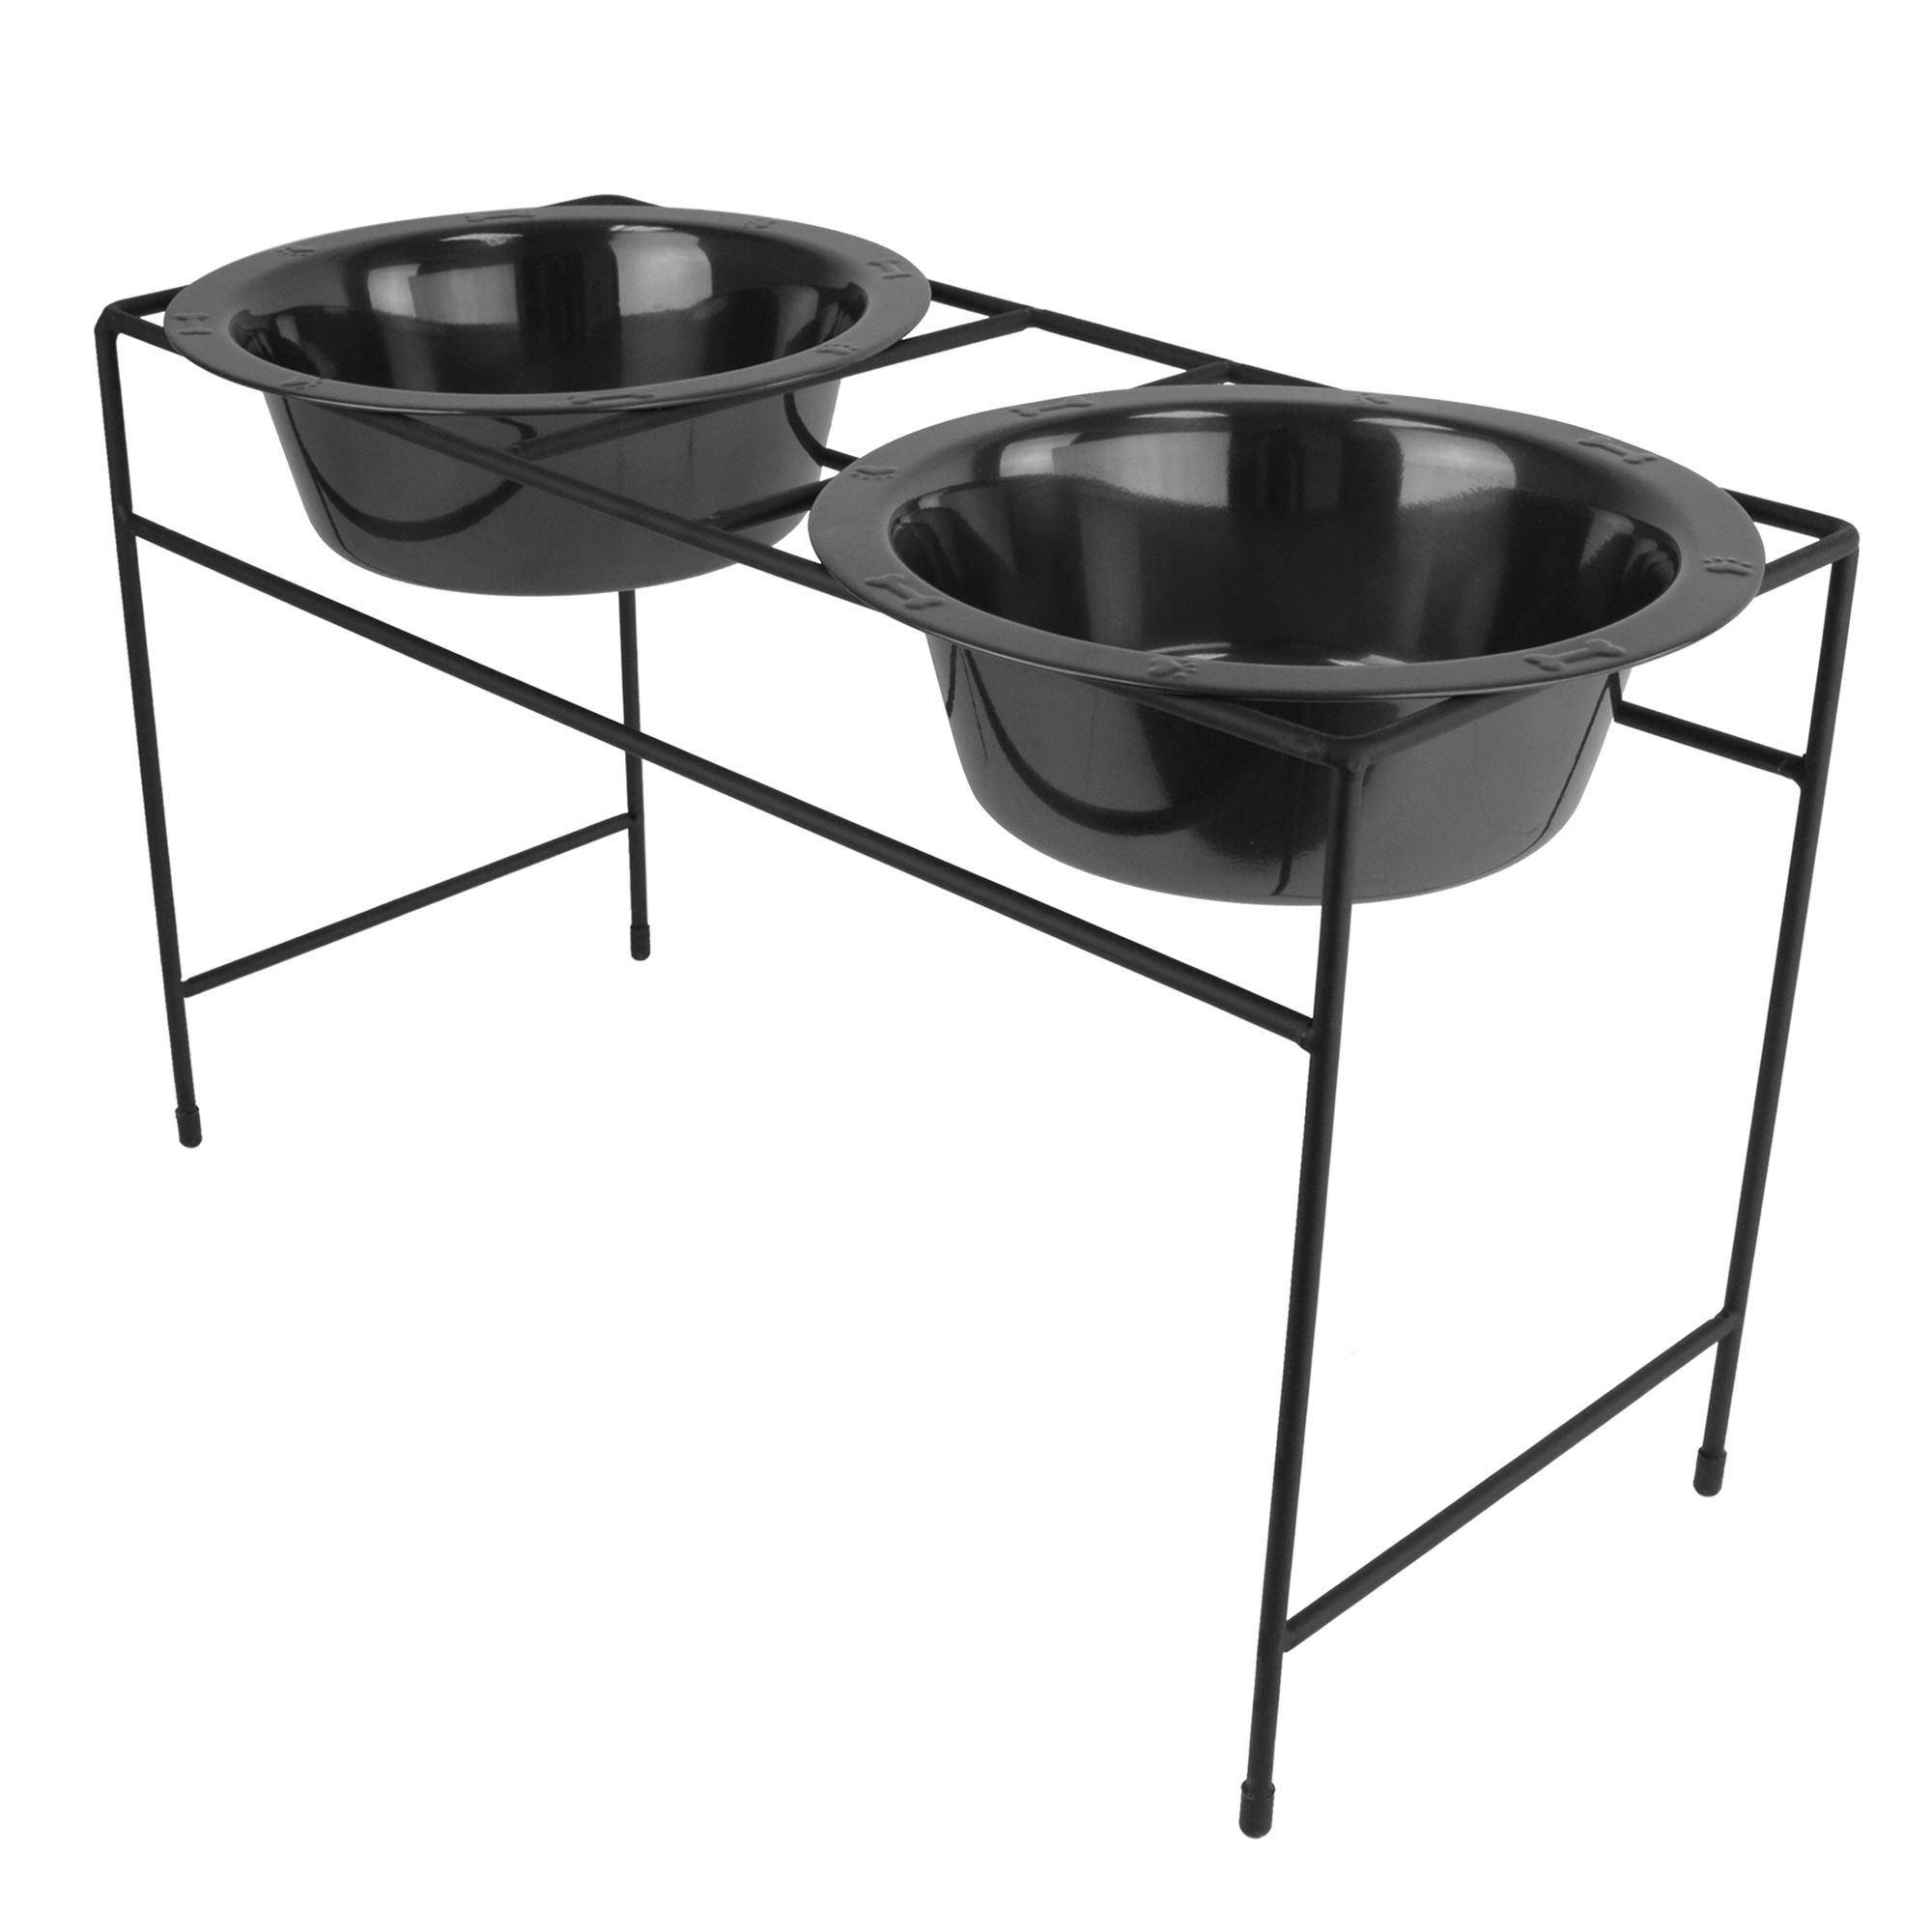 Platinum Pets Double Diner Dog Stand With Bowls Size 6.5l X 15w X 8.5h Black Chrome